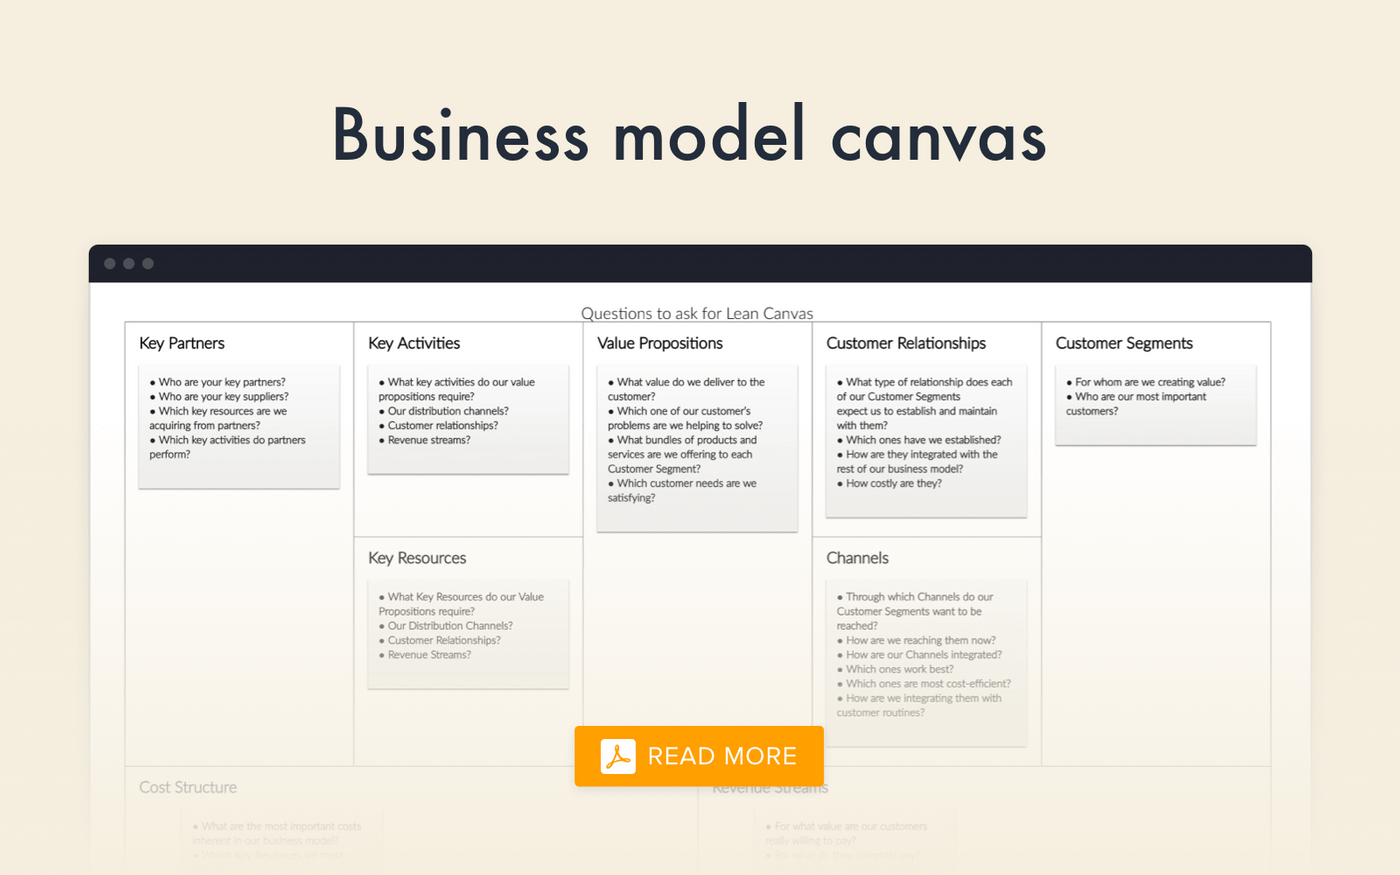 Lean canvas for an Uber-like app